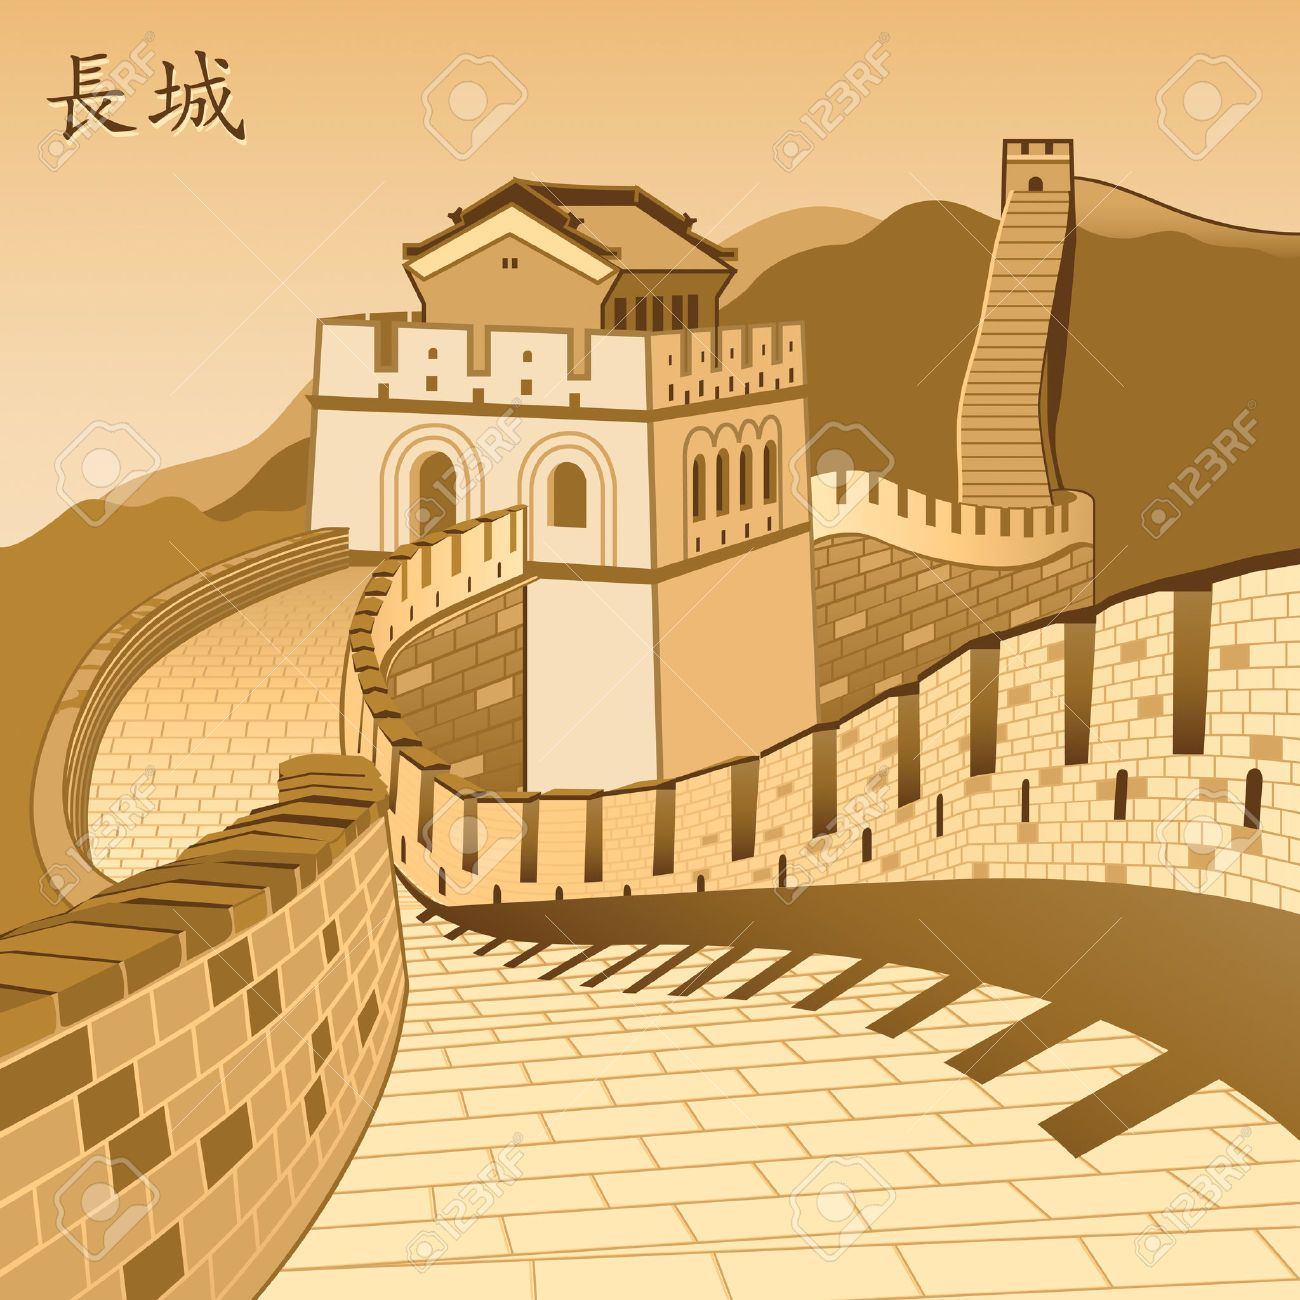 China Landscape Cliparts, Stock Vector And Royalty Free China ...